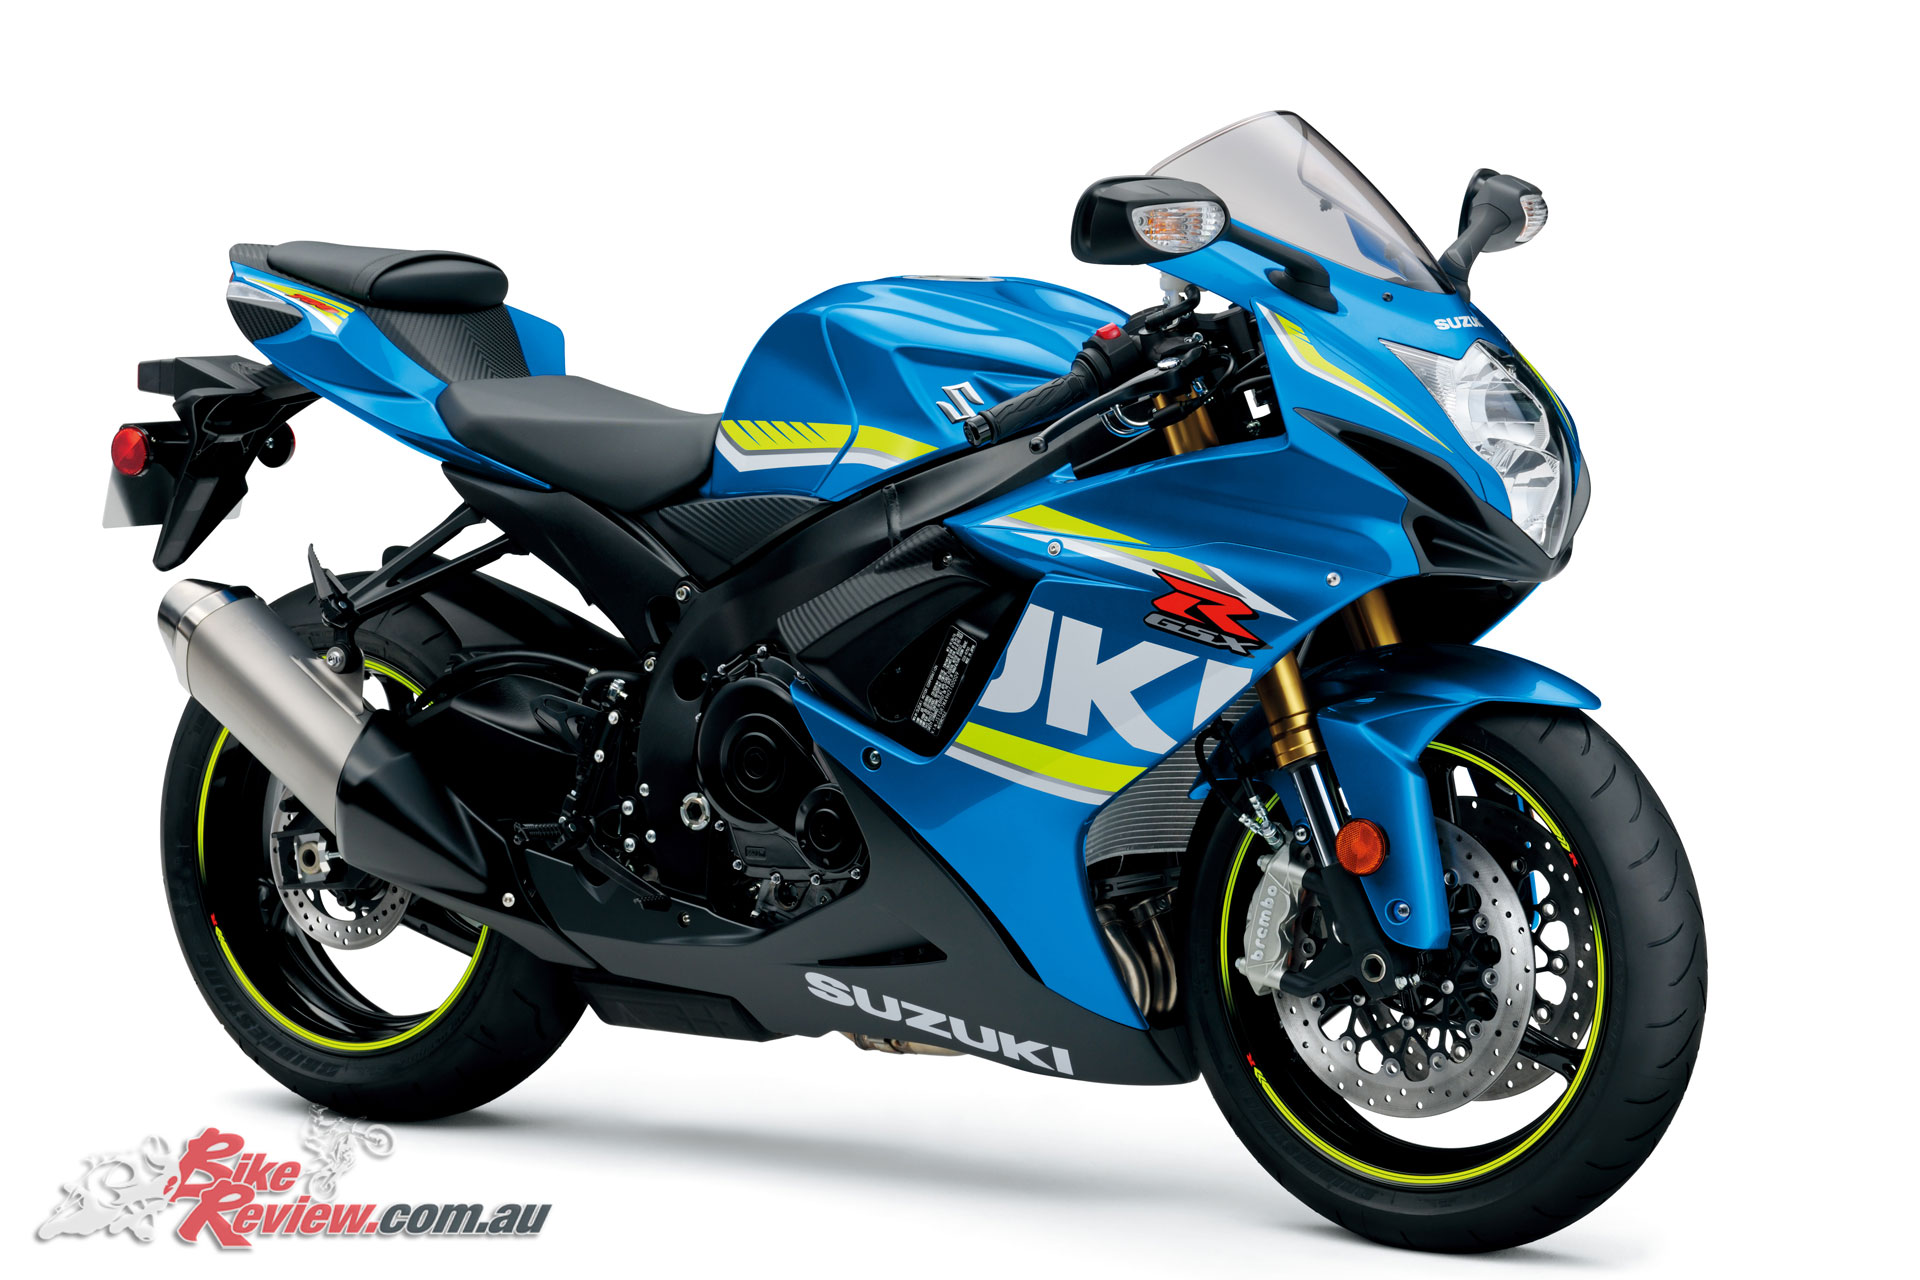 2018 suzuki gsx r750 available in dealers now bike review. Black Bedroom Furniture Sets. Home Design Ideas